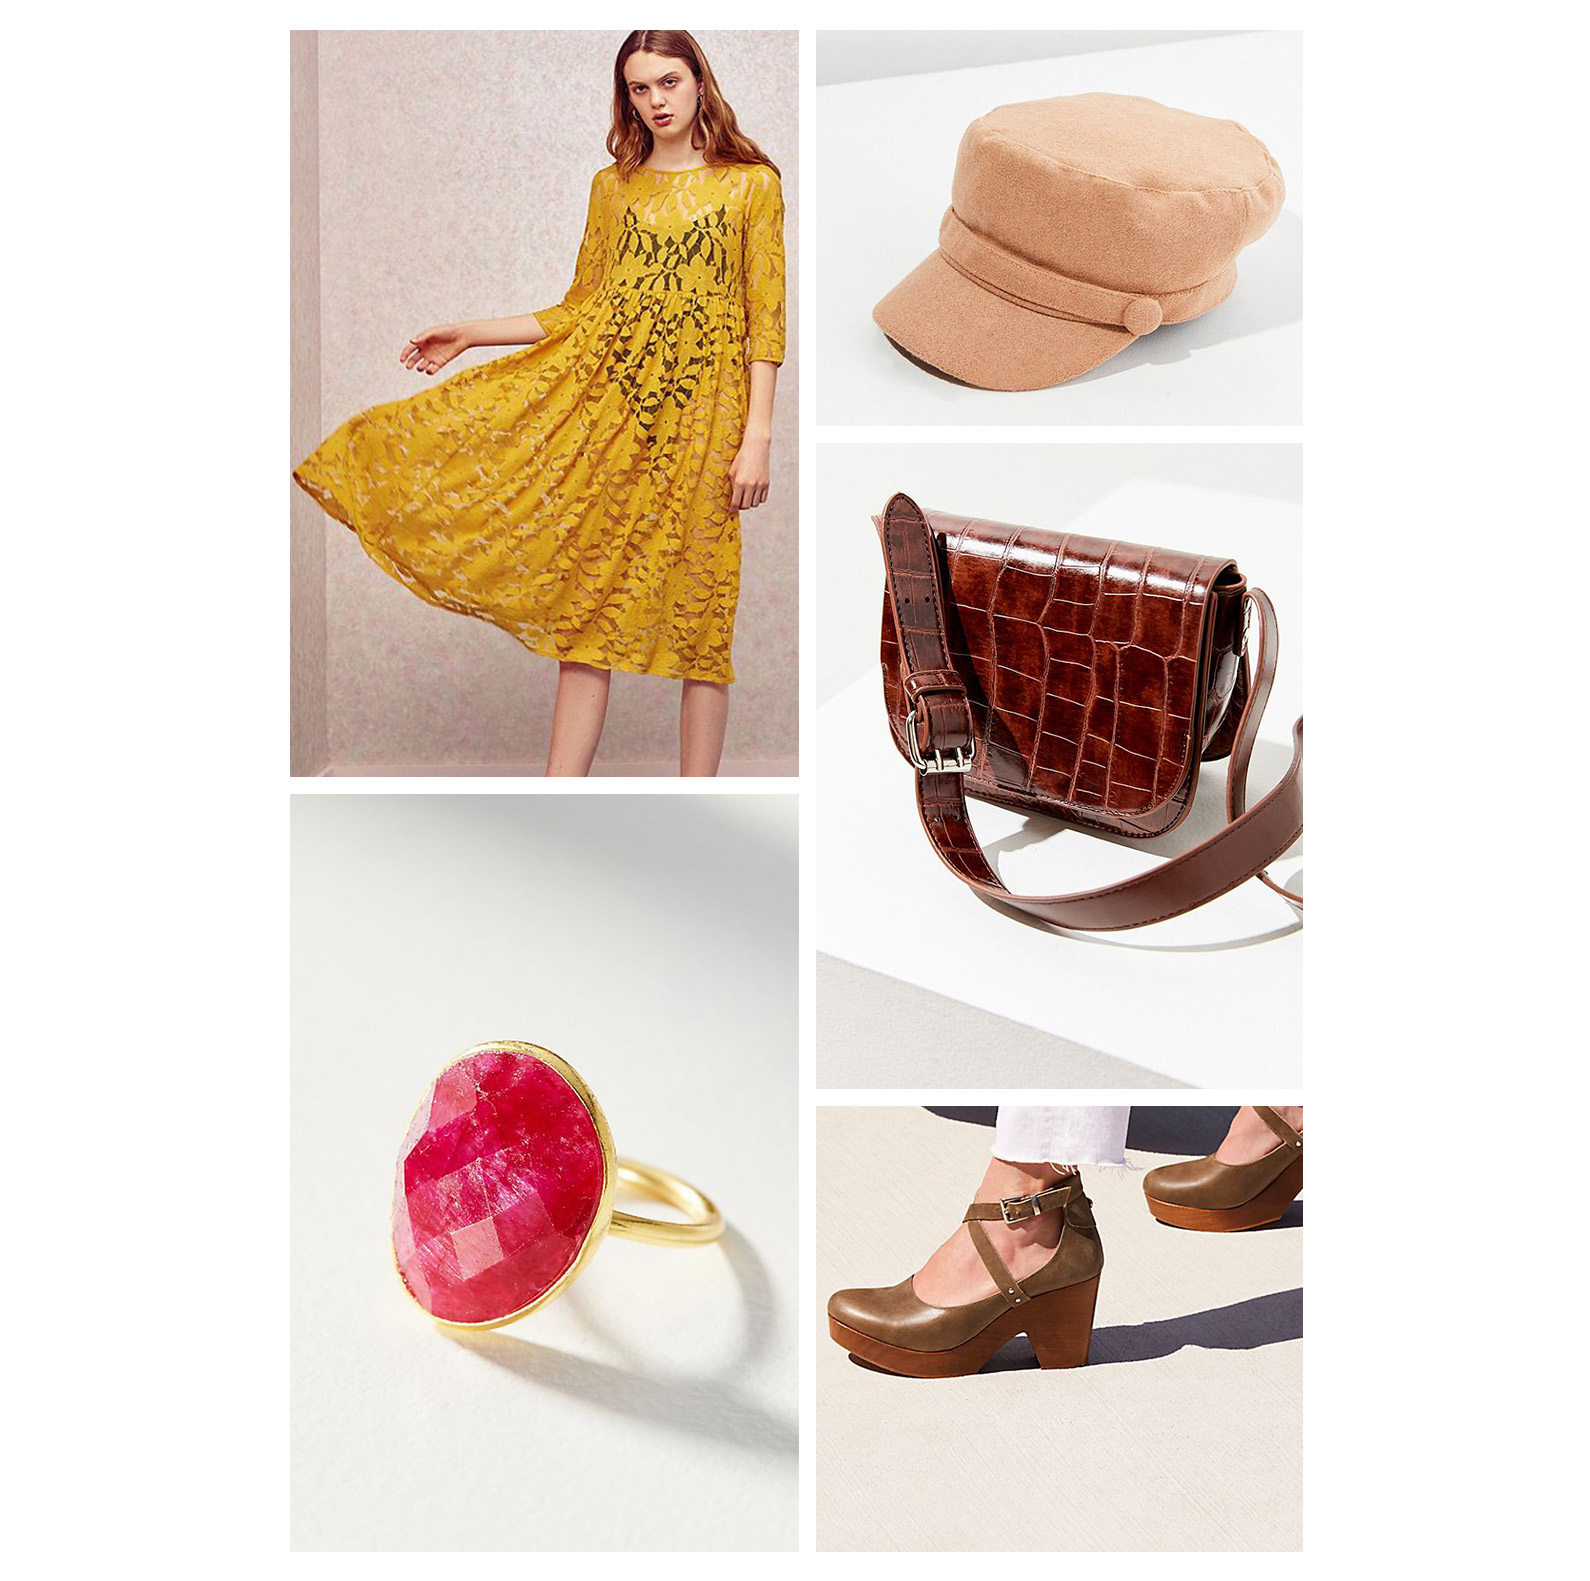 fall-autumn-outfit-lunch-2018-fashion-ideas-yellow-lace-dress-midi-red-brown-bag-newsboy-cap-clogs-anthropologie.jpg